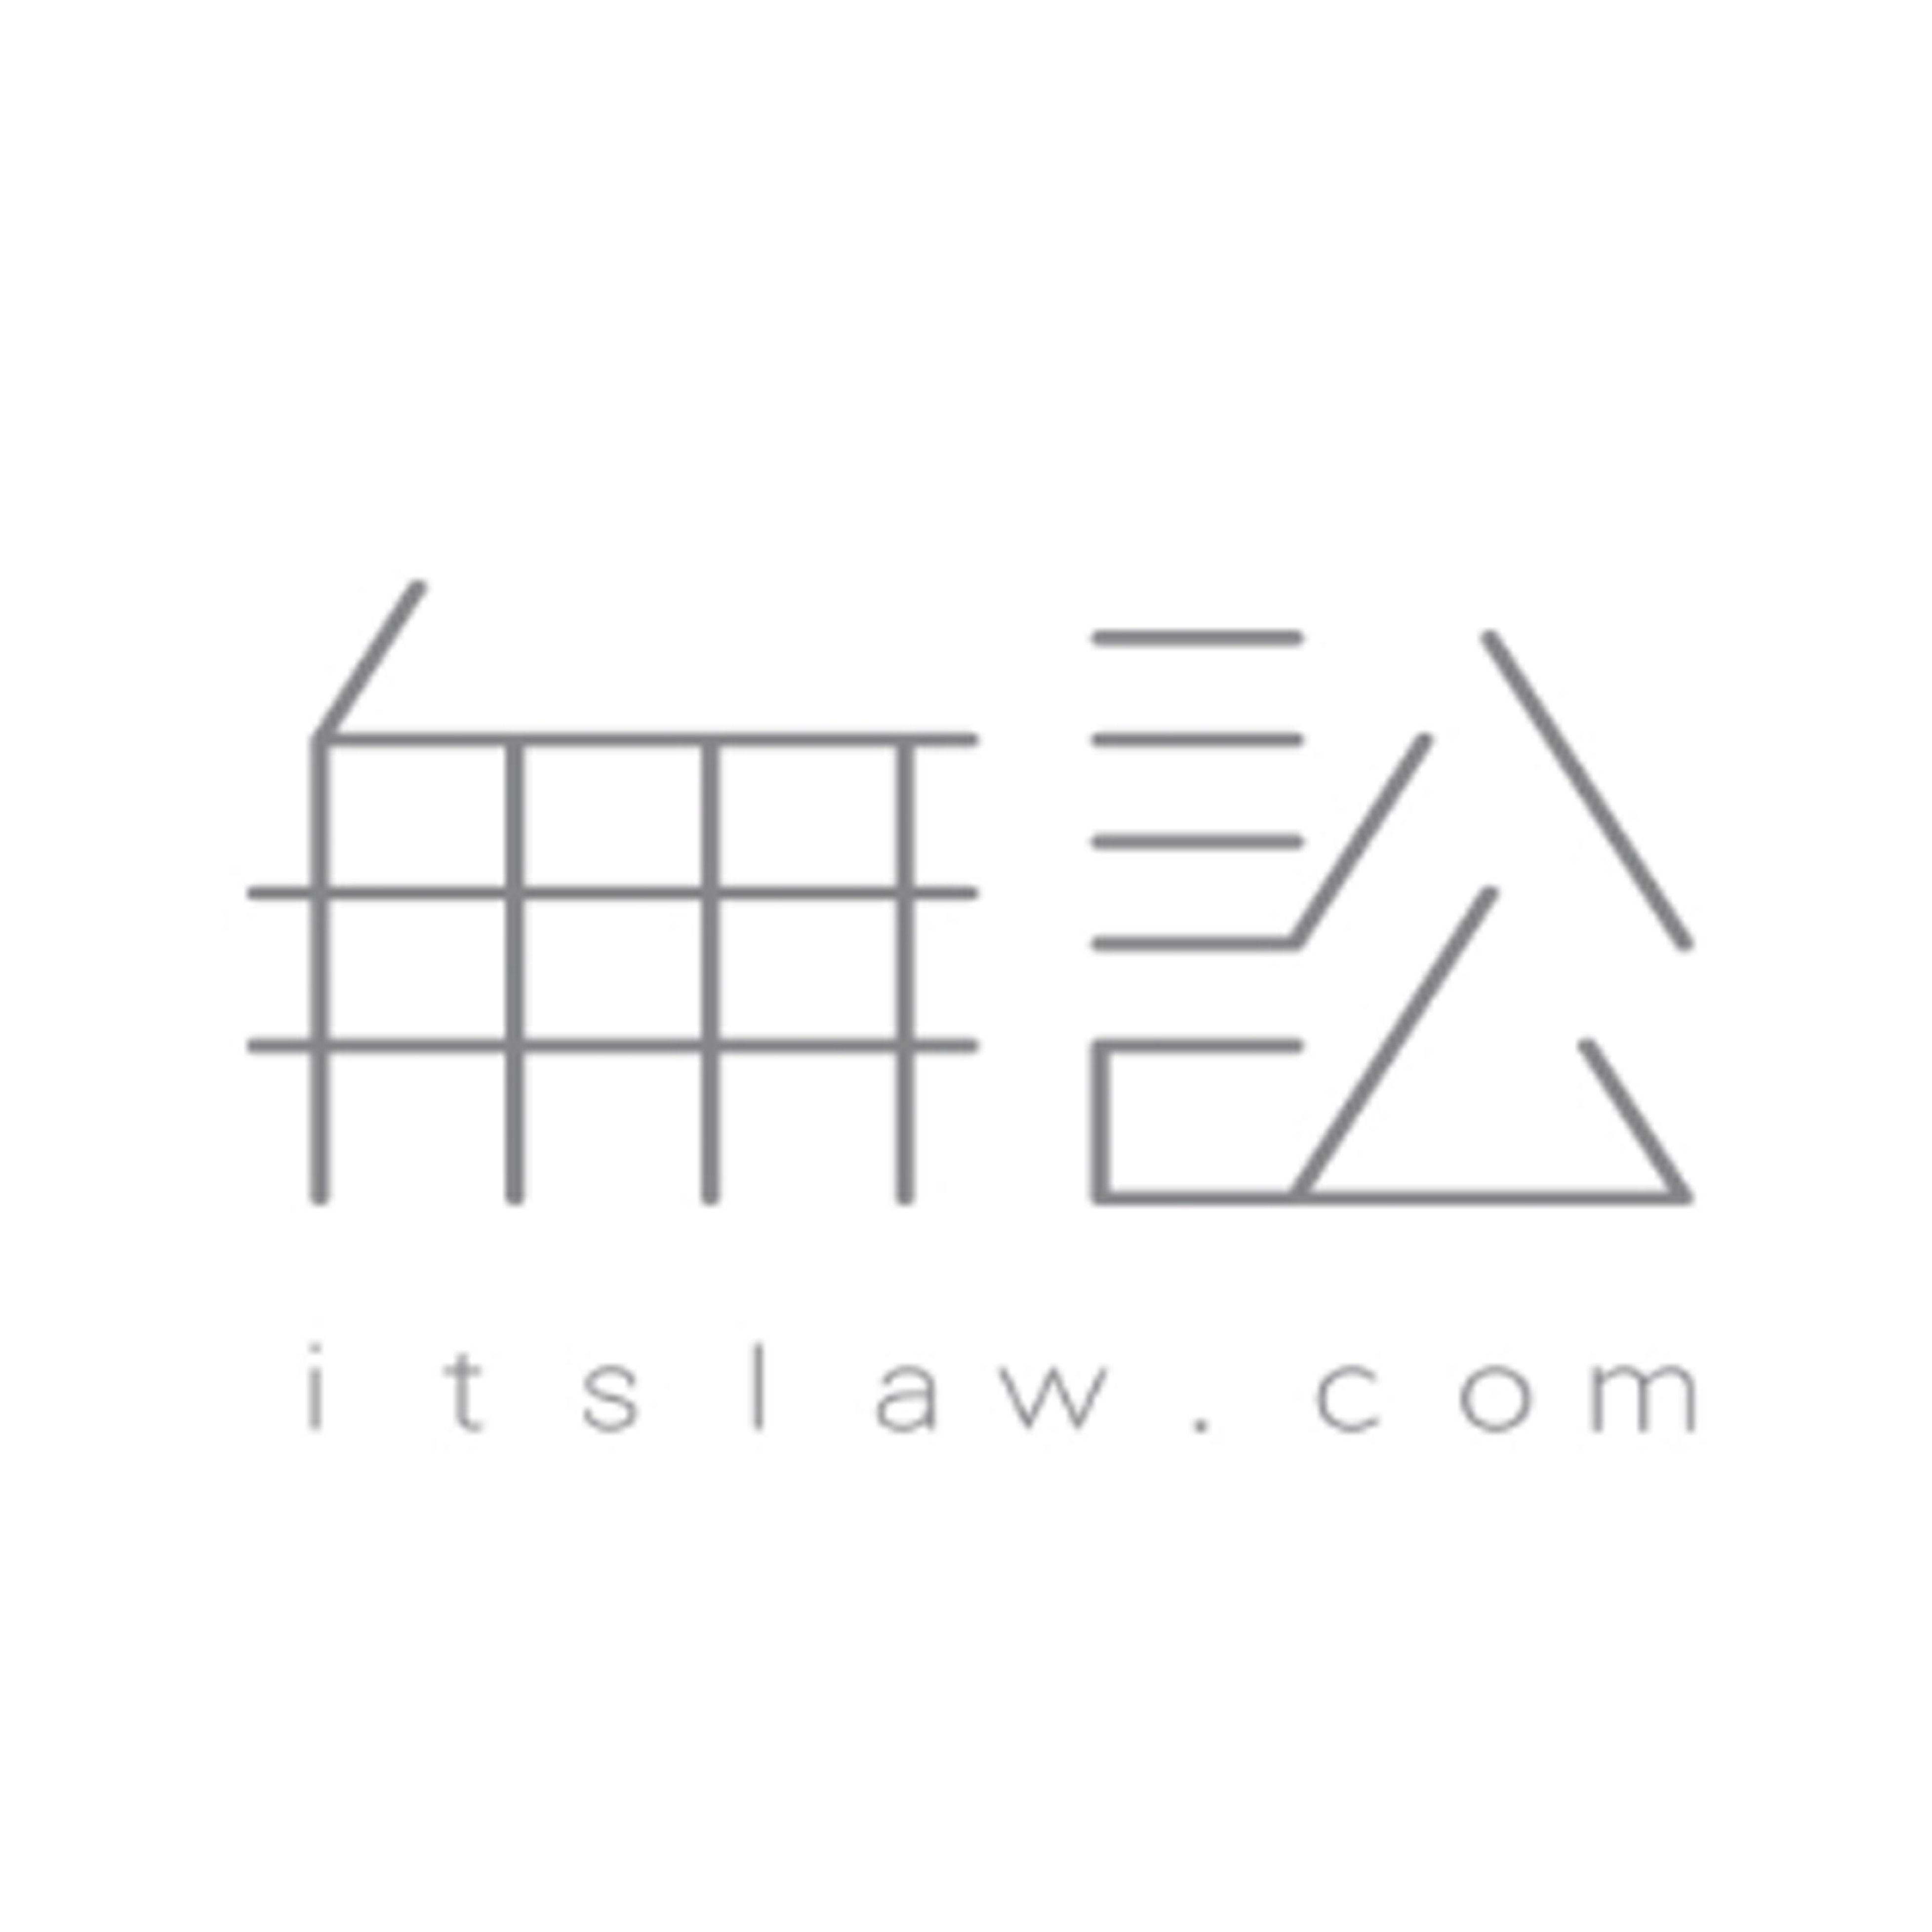 Itslaw